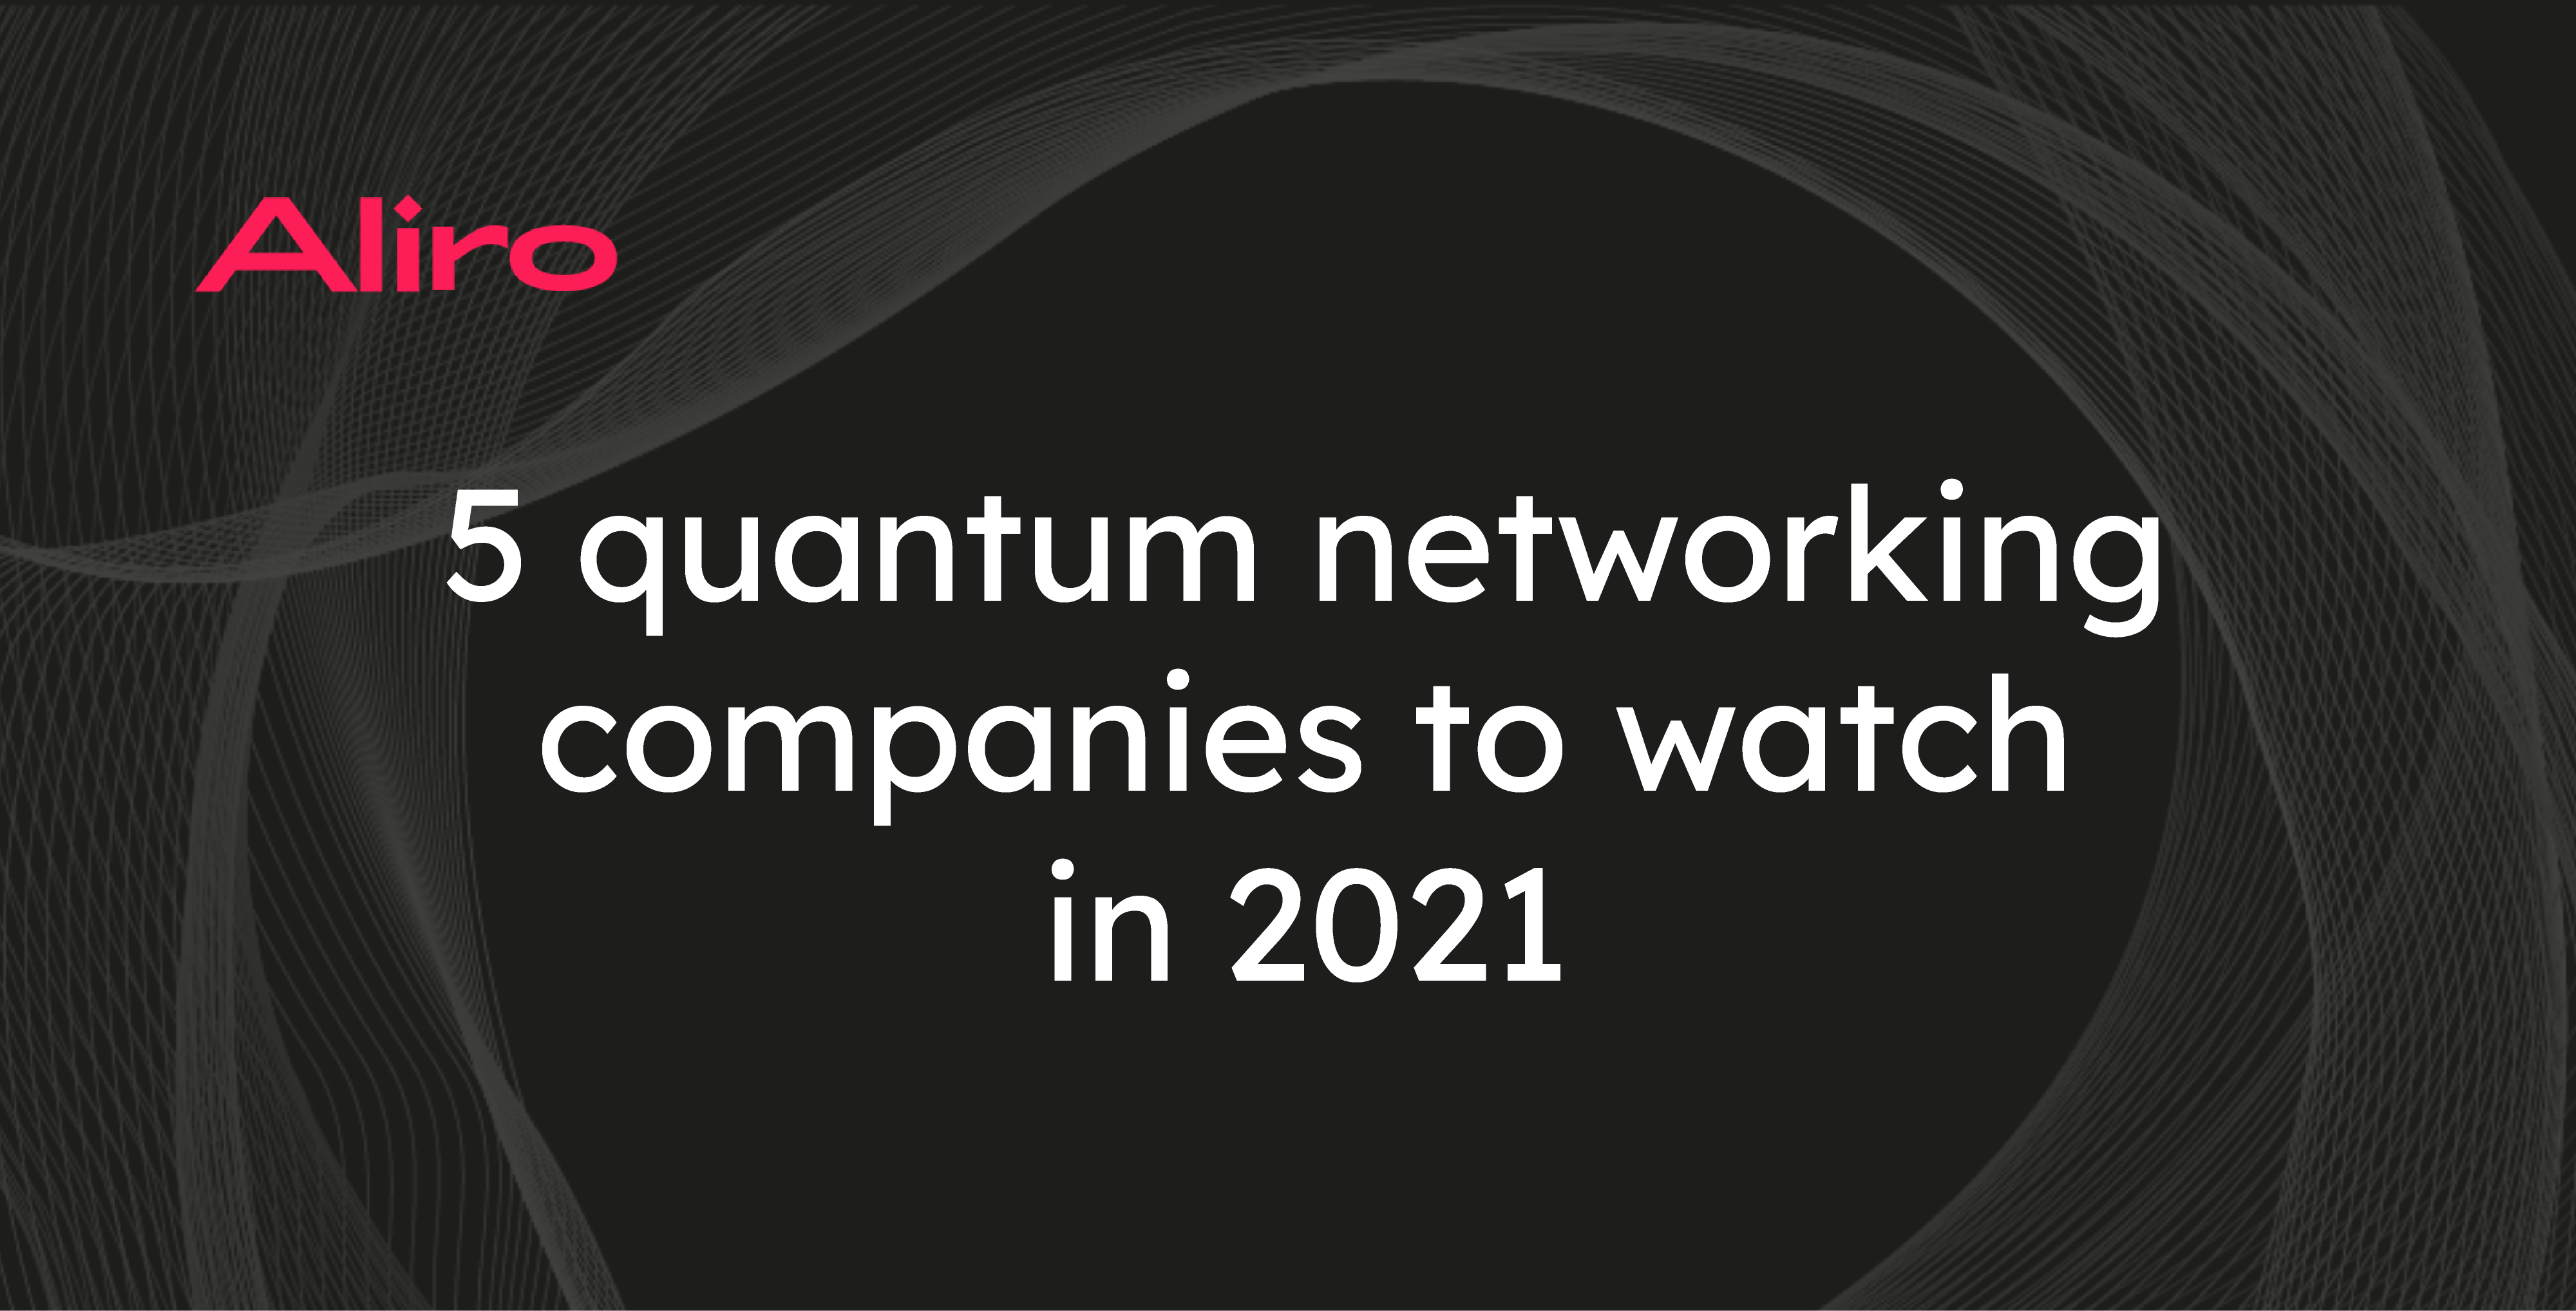 5 quantum networking companies to watch in 2021